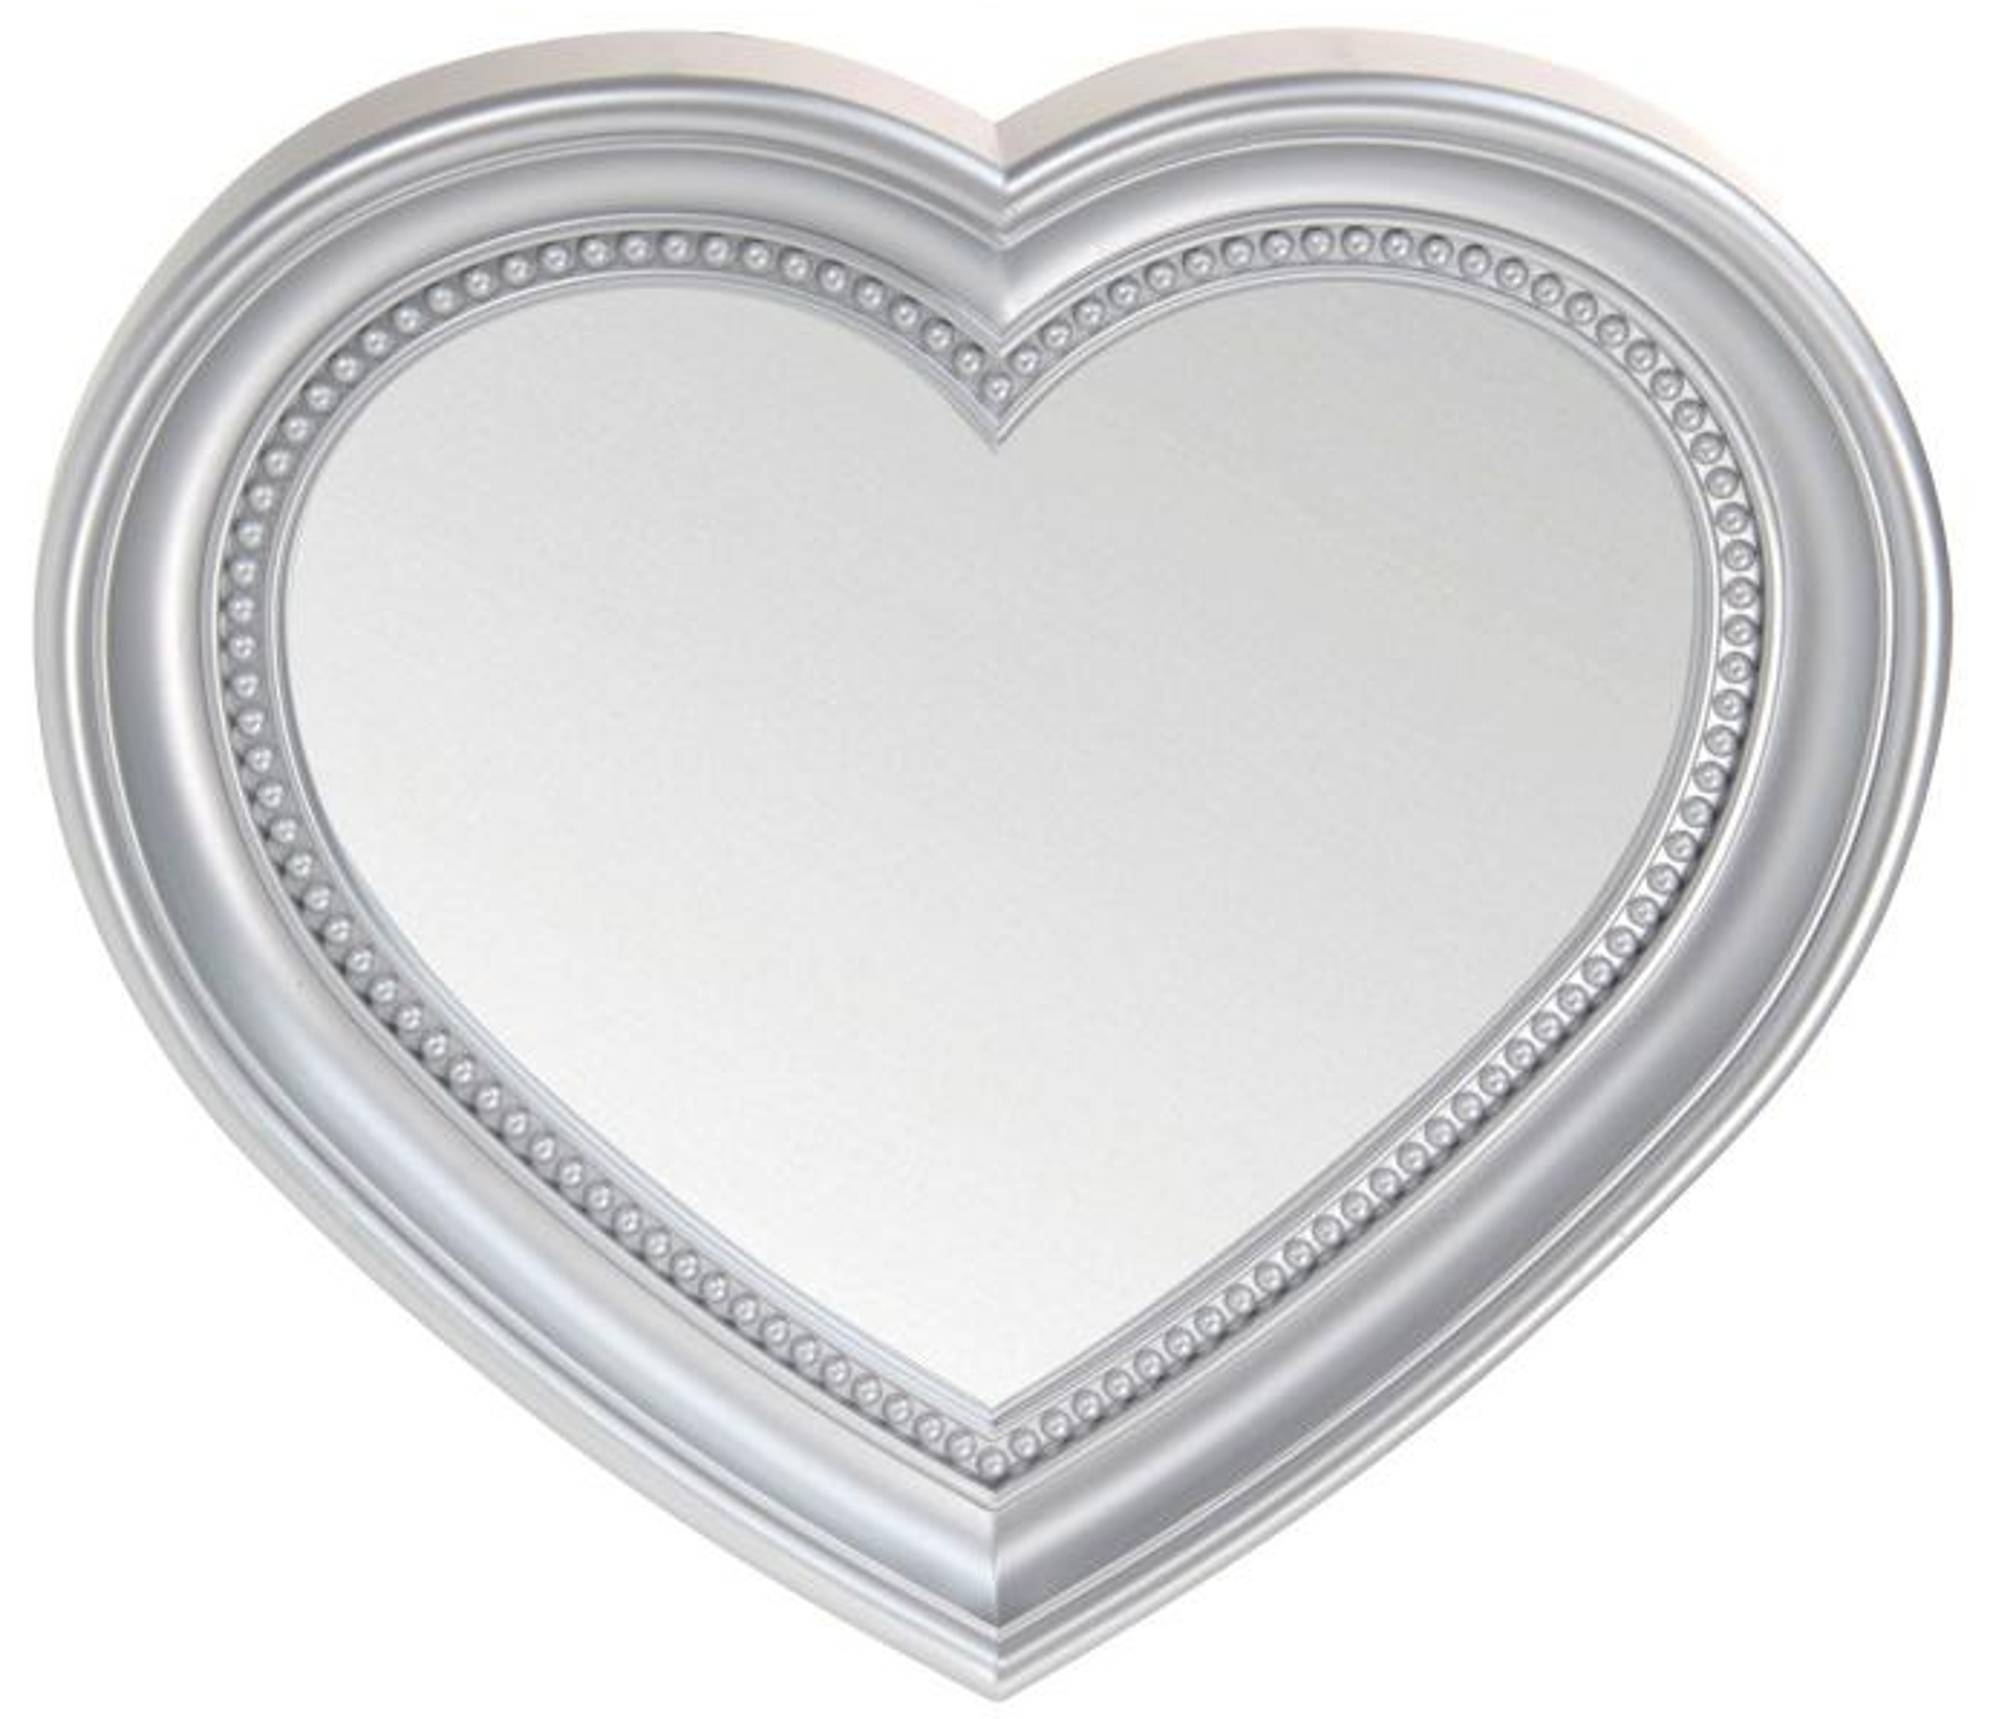 Heart Shaped Wall Hanging Mirror, Silver 45Cm | Blendboutique within Heart Shaped Mirrors for Wall (Image 6 of 25)